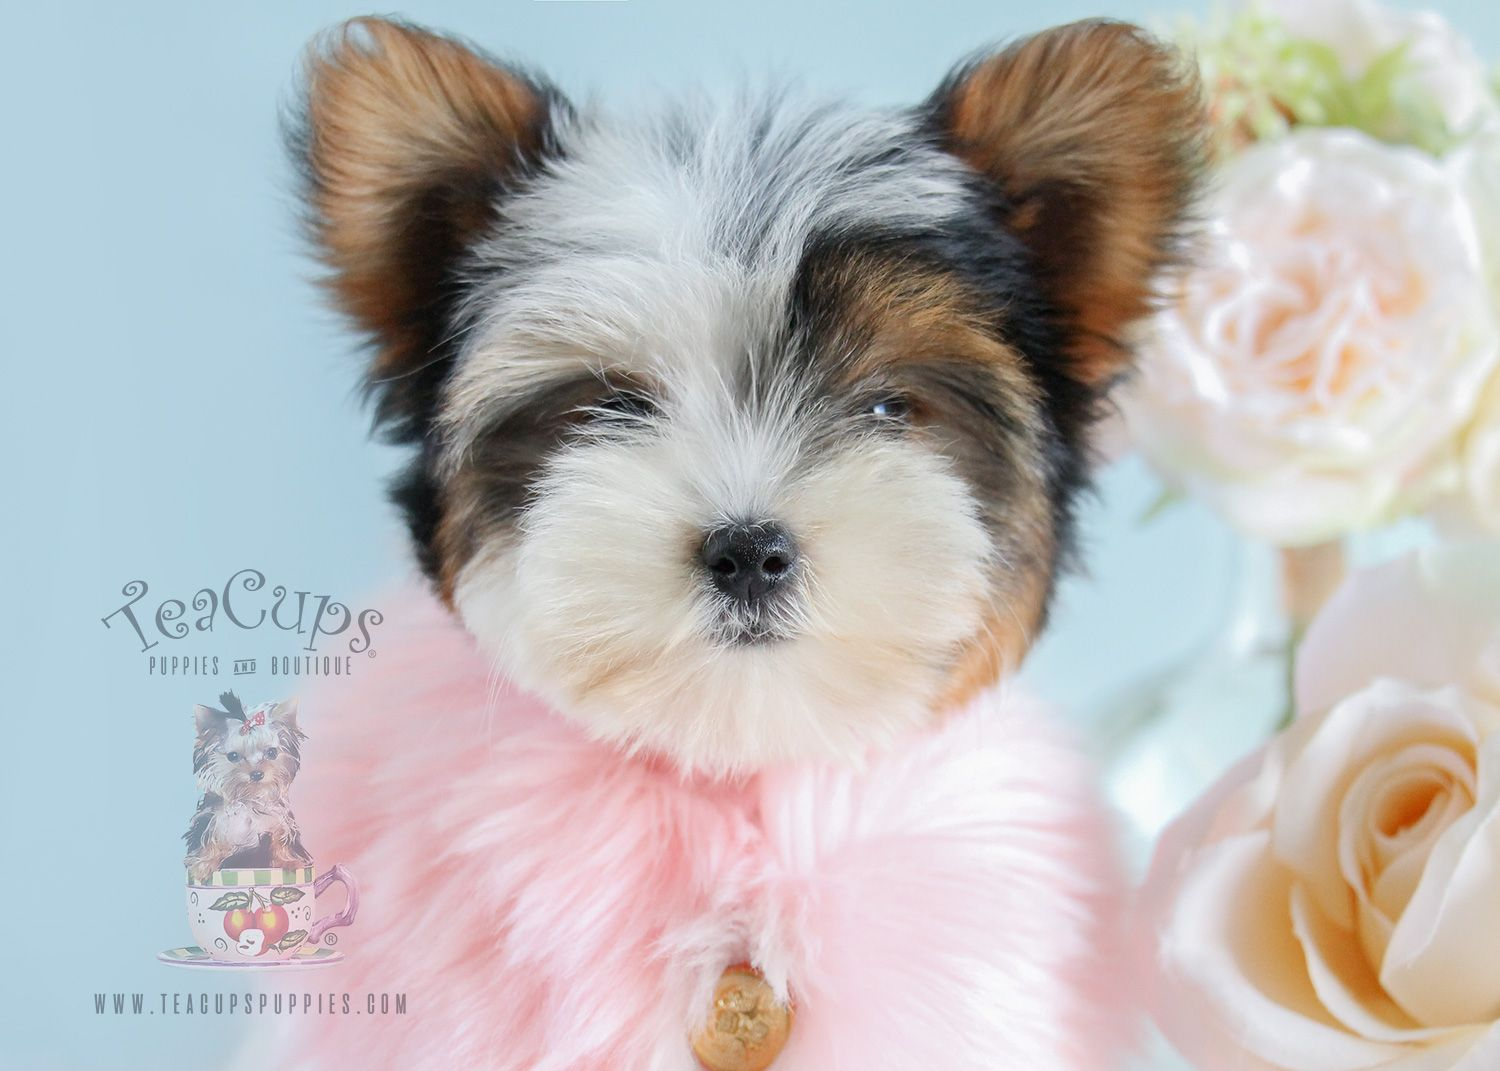 Parti Yorkie Puppy By Teacup Puppies Teacup Puppies Yorkie Puppy Teacup Yorkie